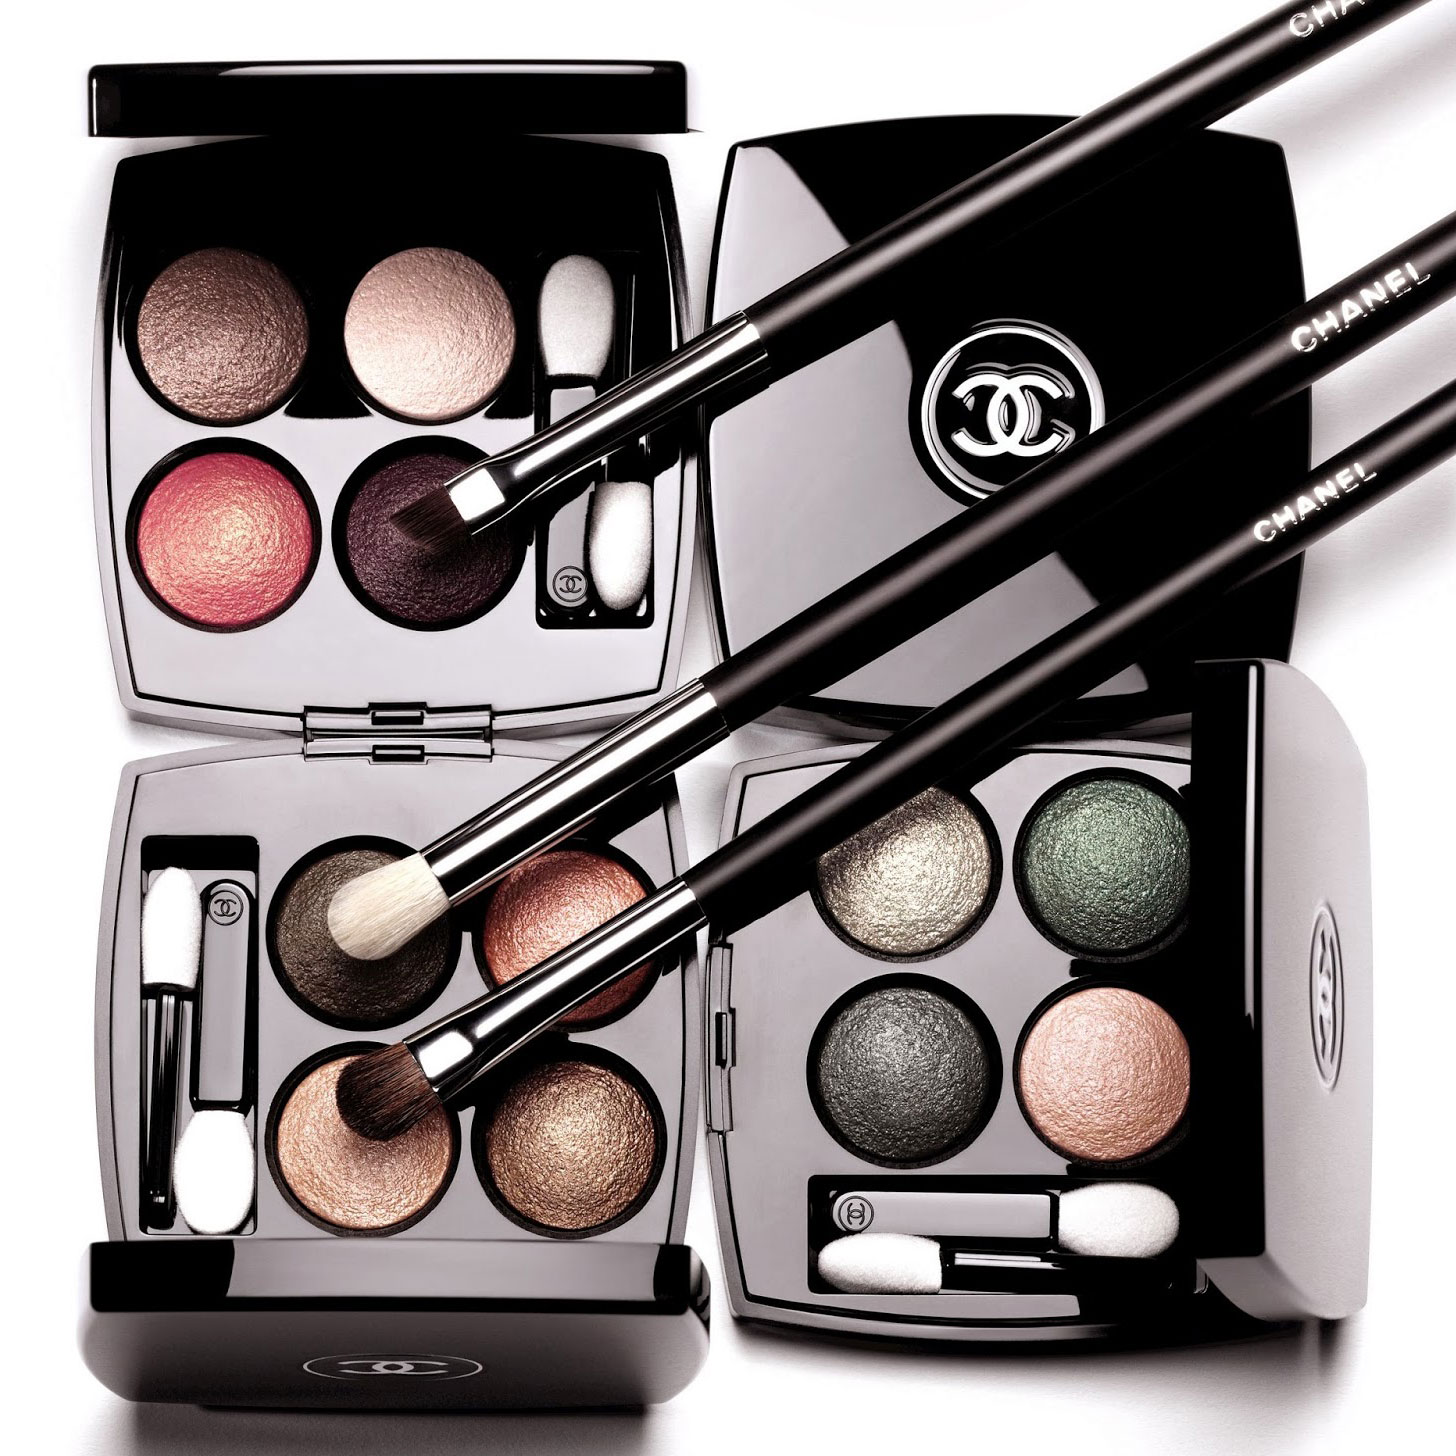 Jayded dreaming beauty blog : chanel les 4 ombres multi-effect quadra eyeshadow collection - now available on chanel.com.